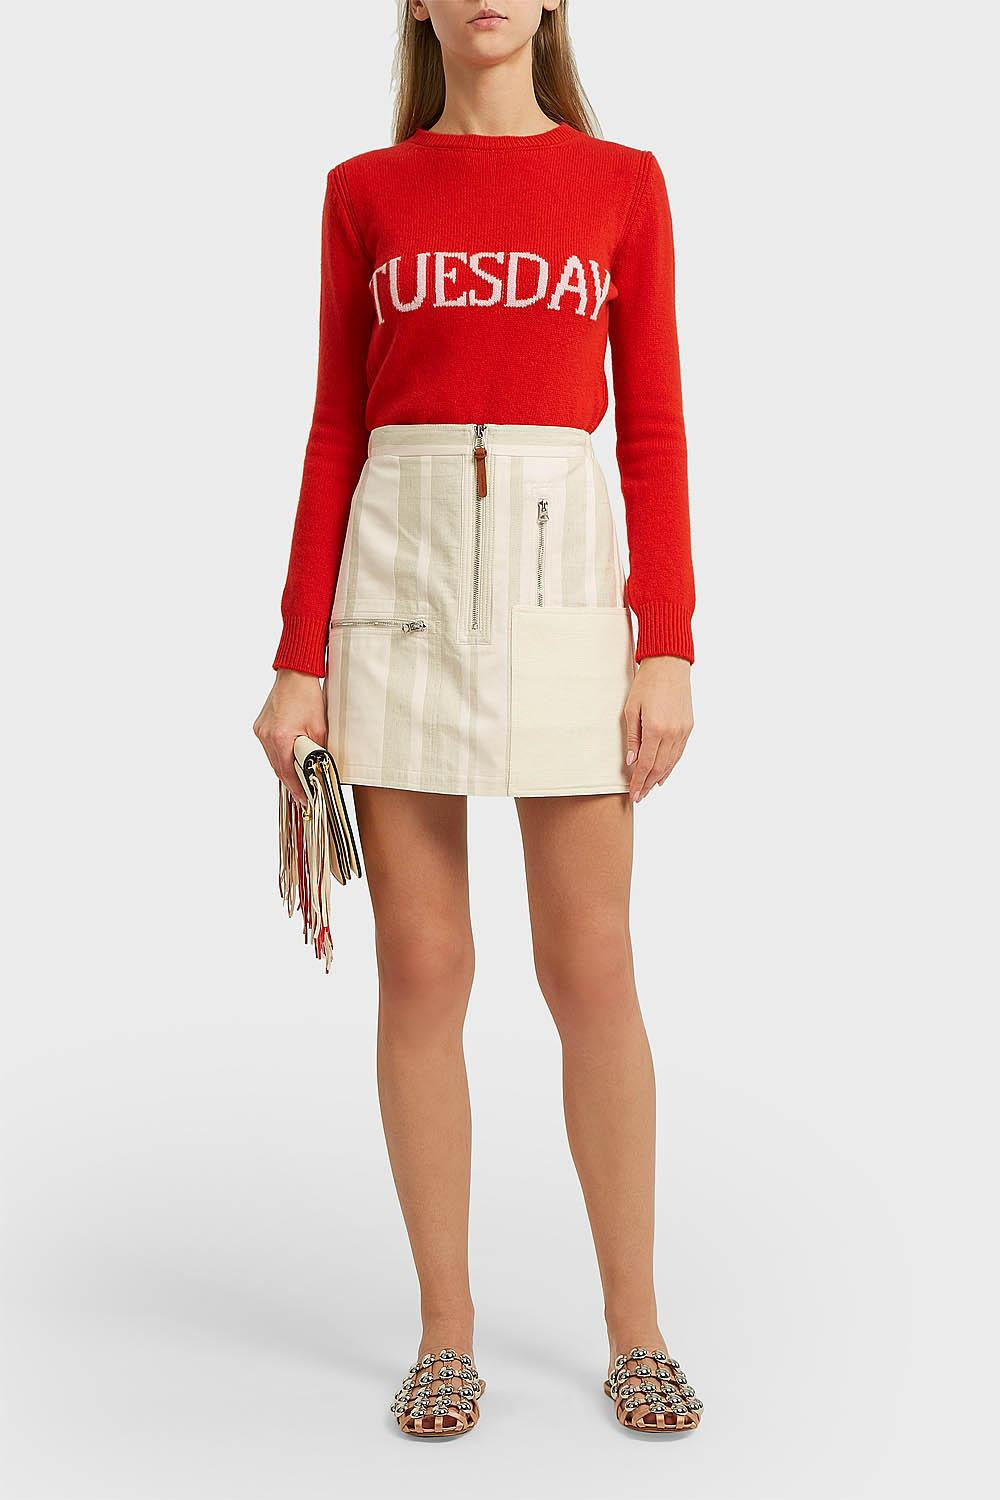 TUESDAY INTARSIA WOOL AND CASHMERE-BLEND JUMPER, IT44